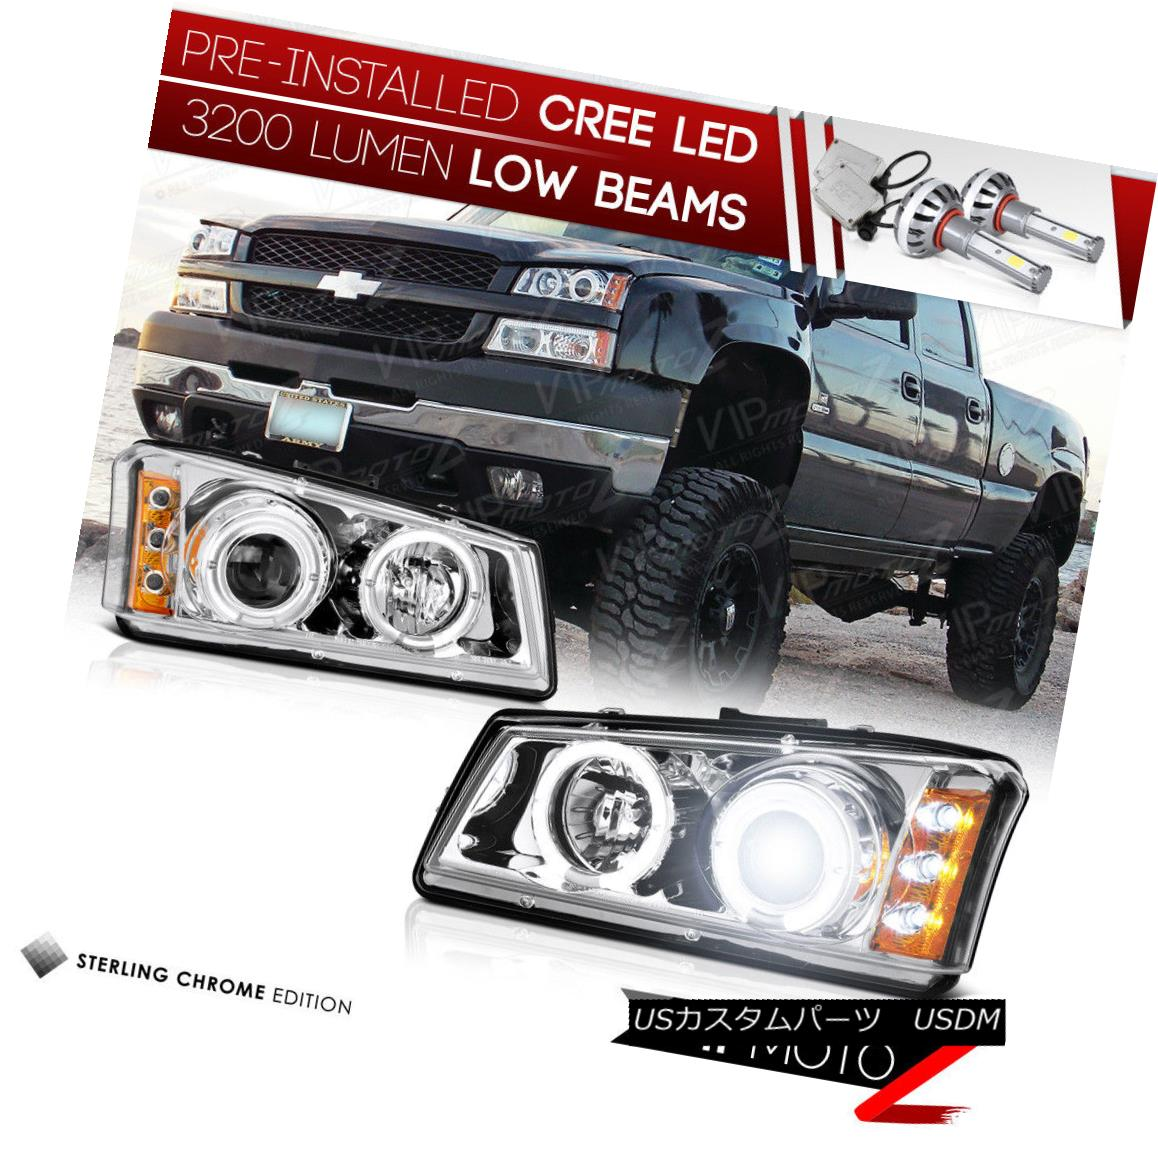 ヘッドライト [BUILT-IN LED LOW BEAM] 03-06 Chevy Silverado Headlights 04-06 Avalanche DRL SMD [内蔵LEDロービーム] 03-06 Chevy Silveradoヘッドライト04-06アバランチェDRL SMD